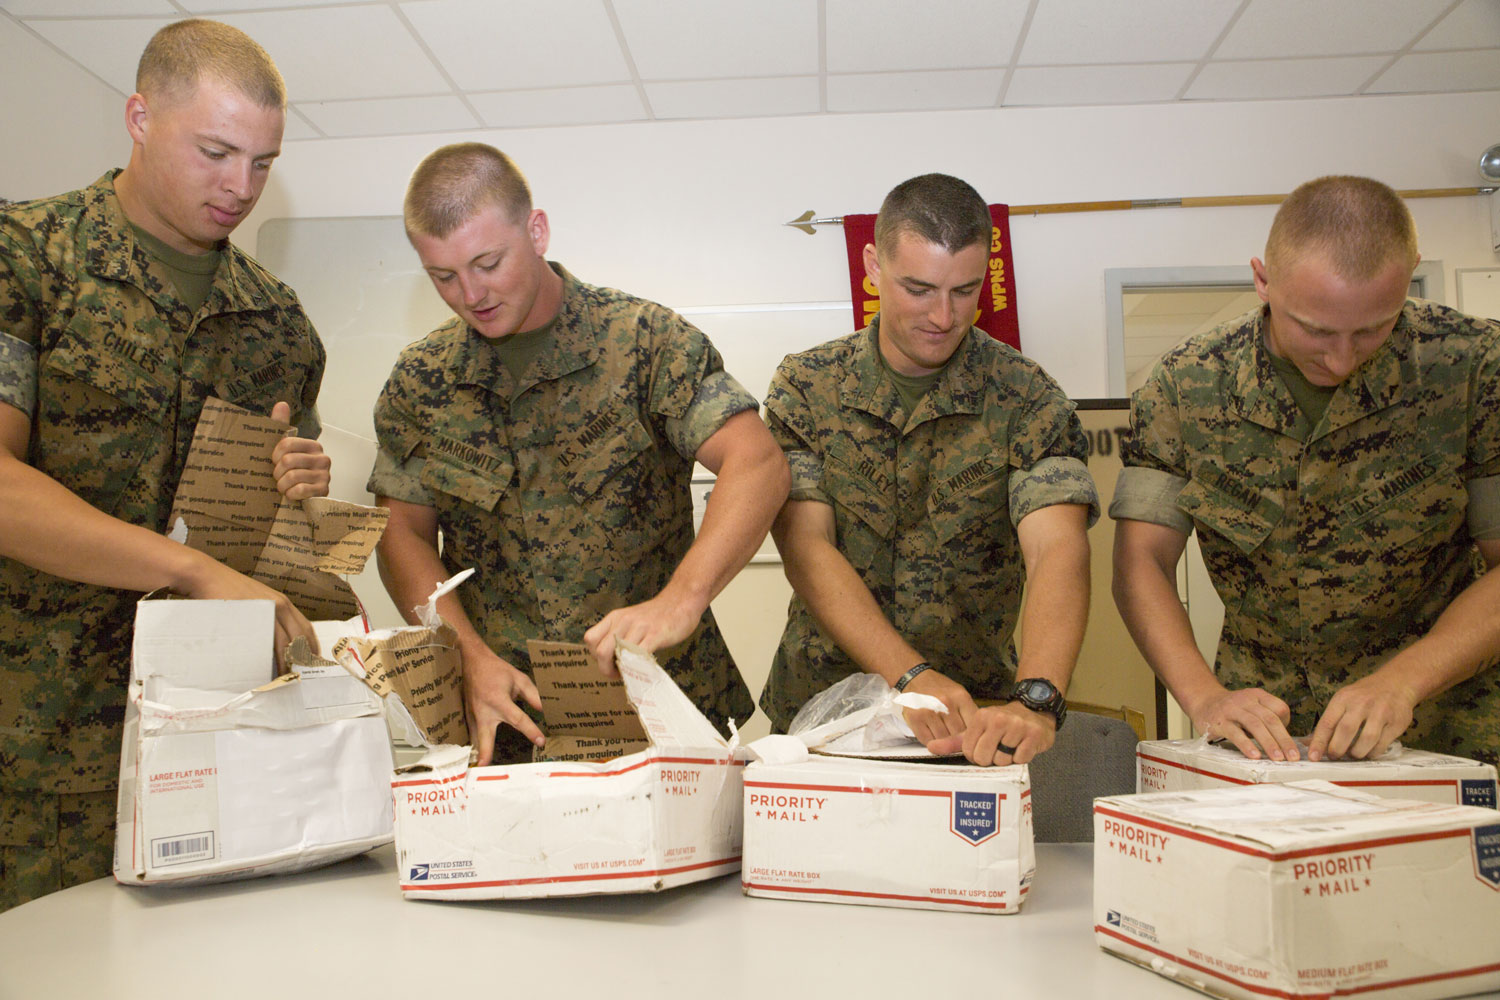 7 Affordable Ideas For Military Care Packages Military Com